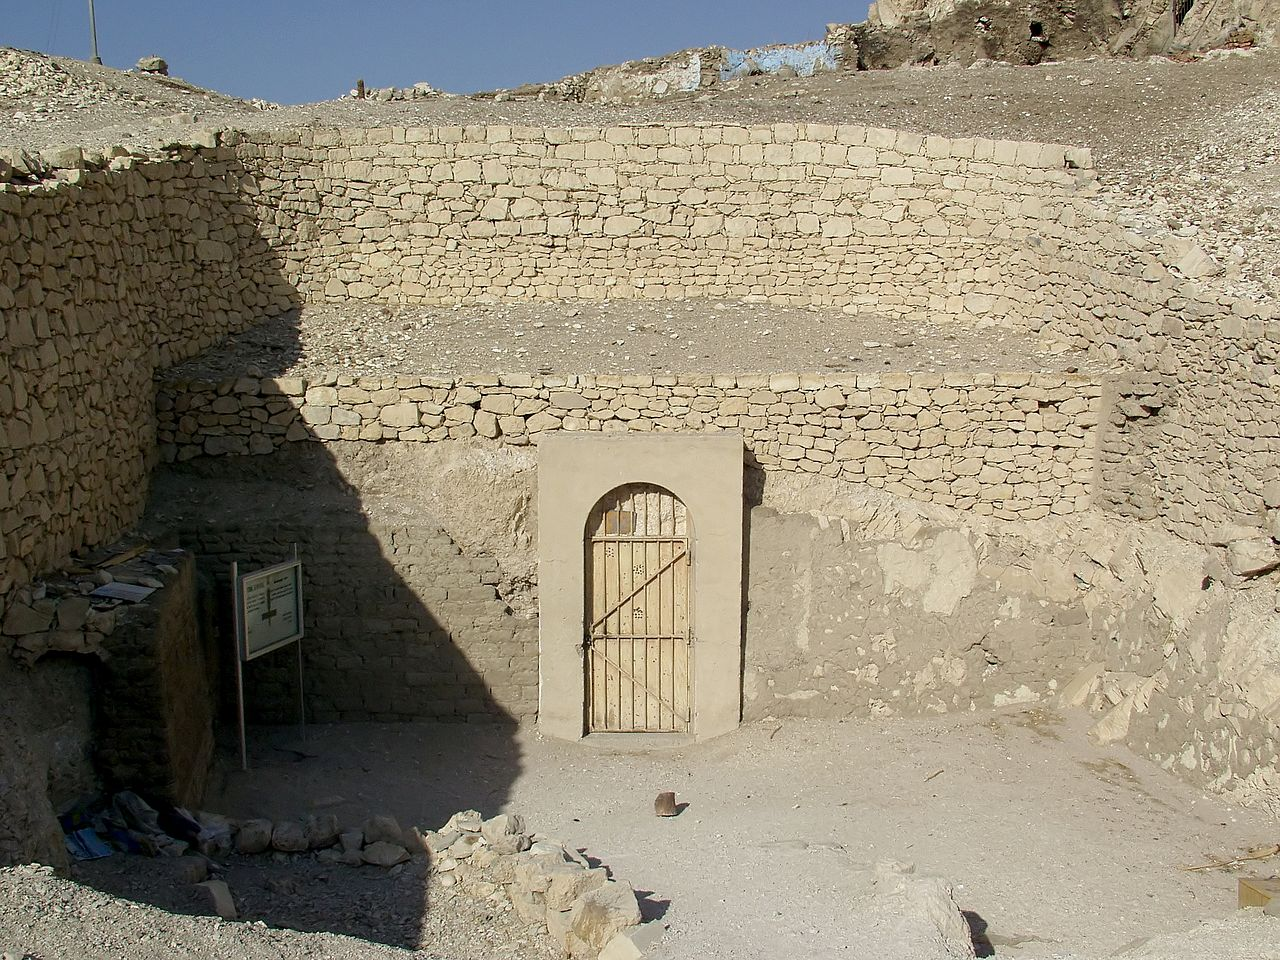 The entrance of the Tomb of Menna © Raimond Spekking / CC BY-SA 4.0 (via Wikimedia Commons)